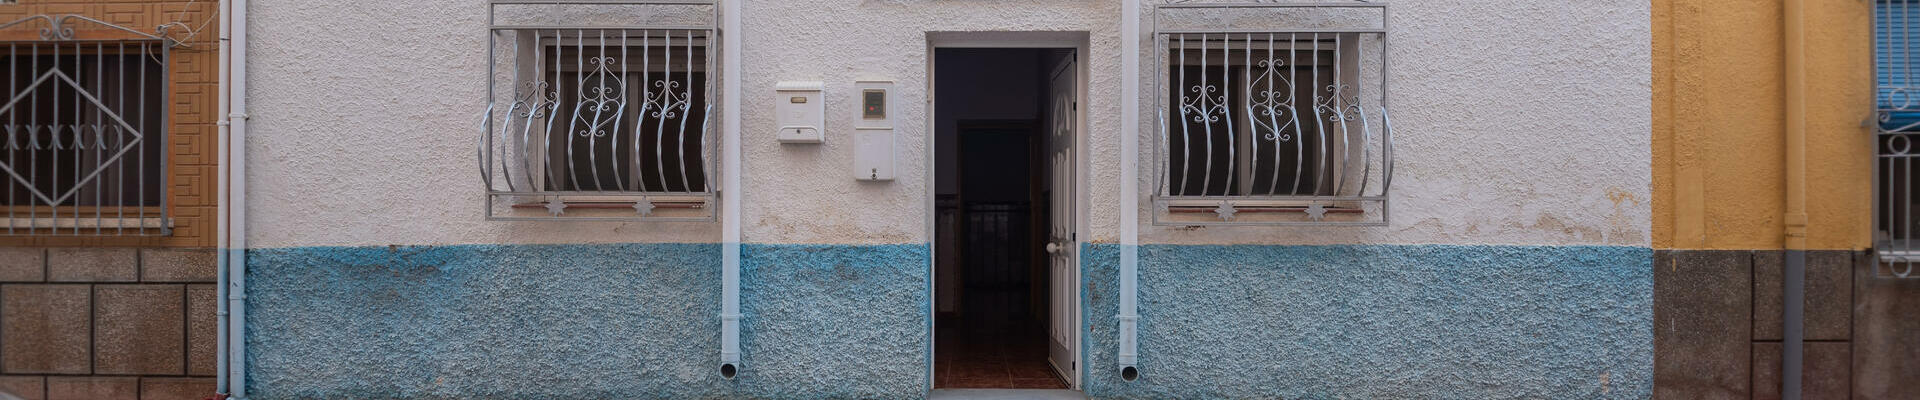 LV789: 4 Bedroom Townhouse for Sale